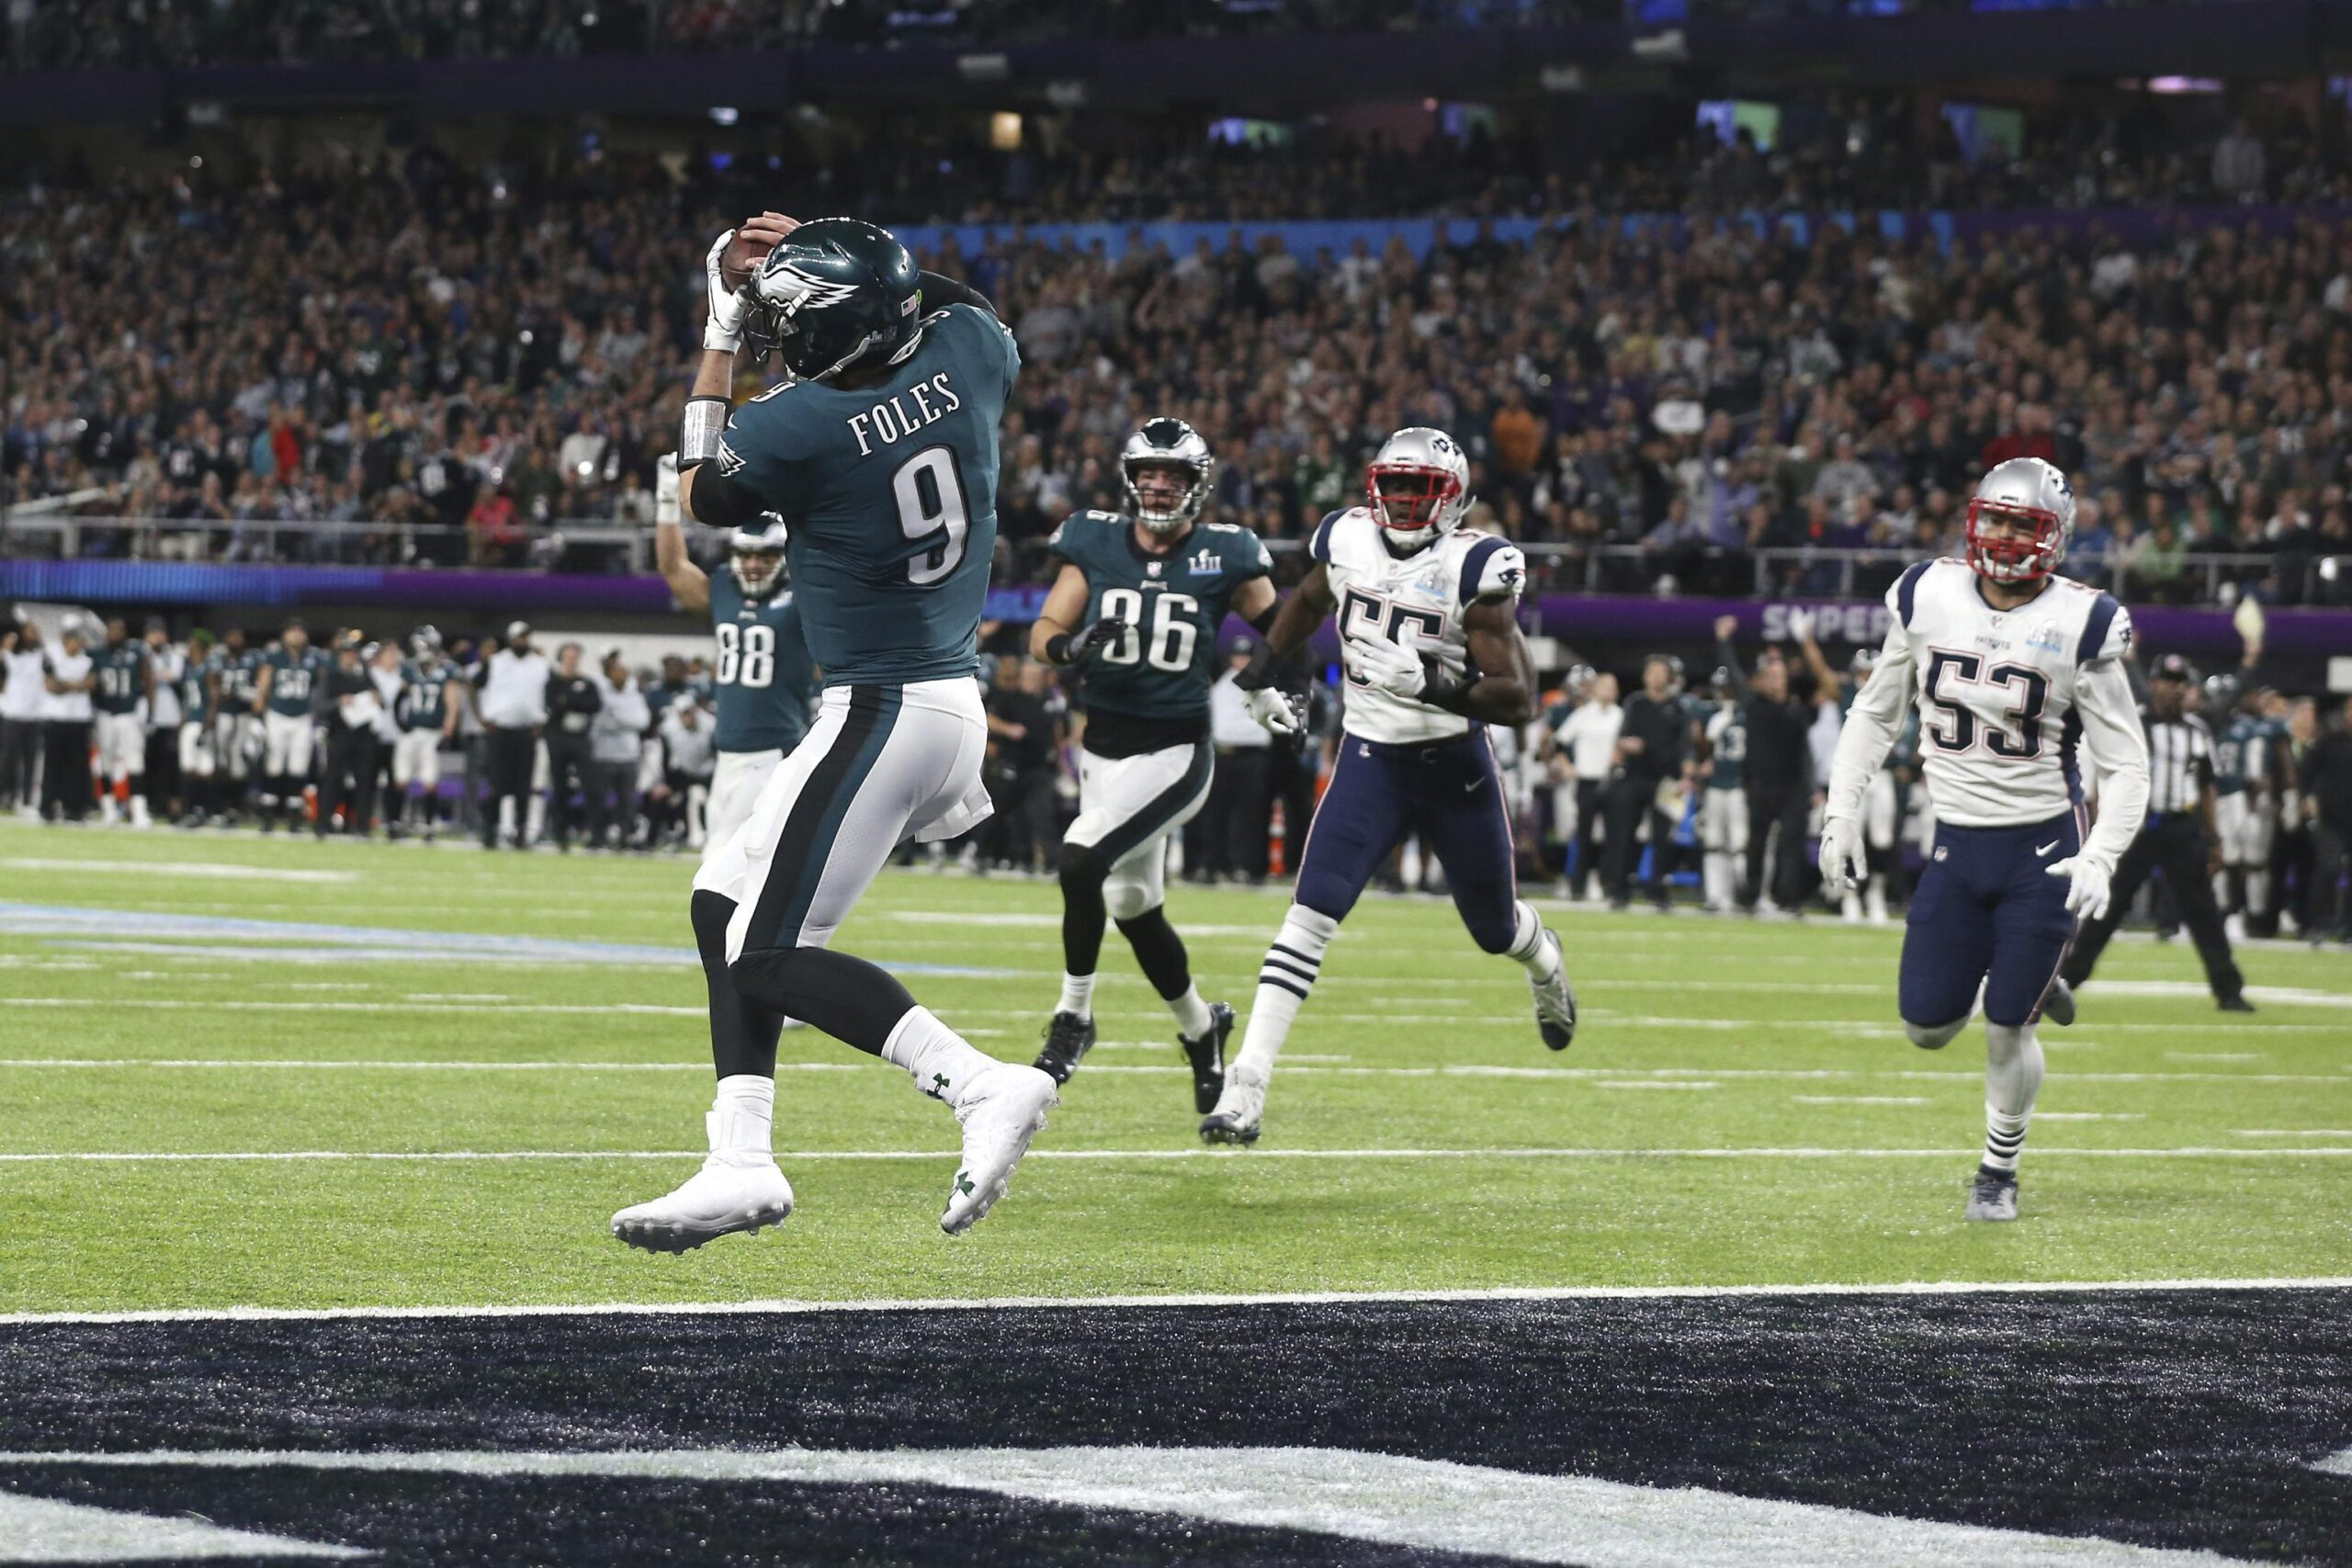 Nick Foles scores a touchdown on the famous Philly Special in Super Bowl LII.